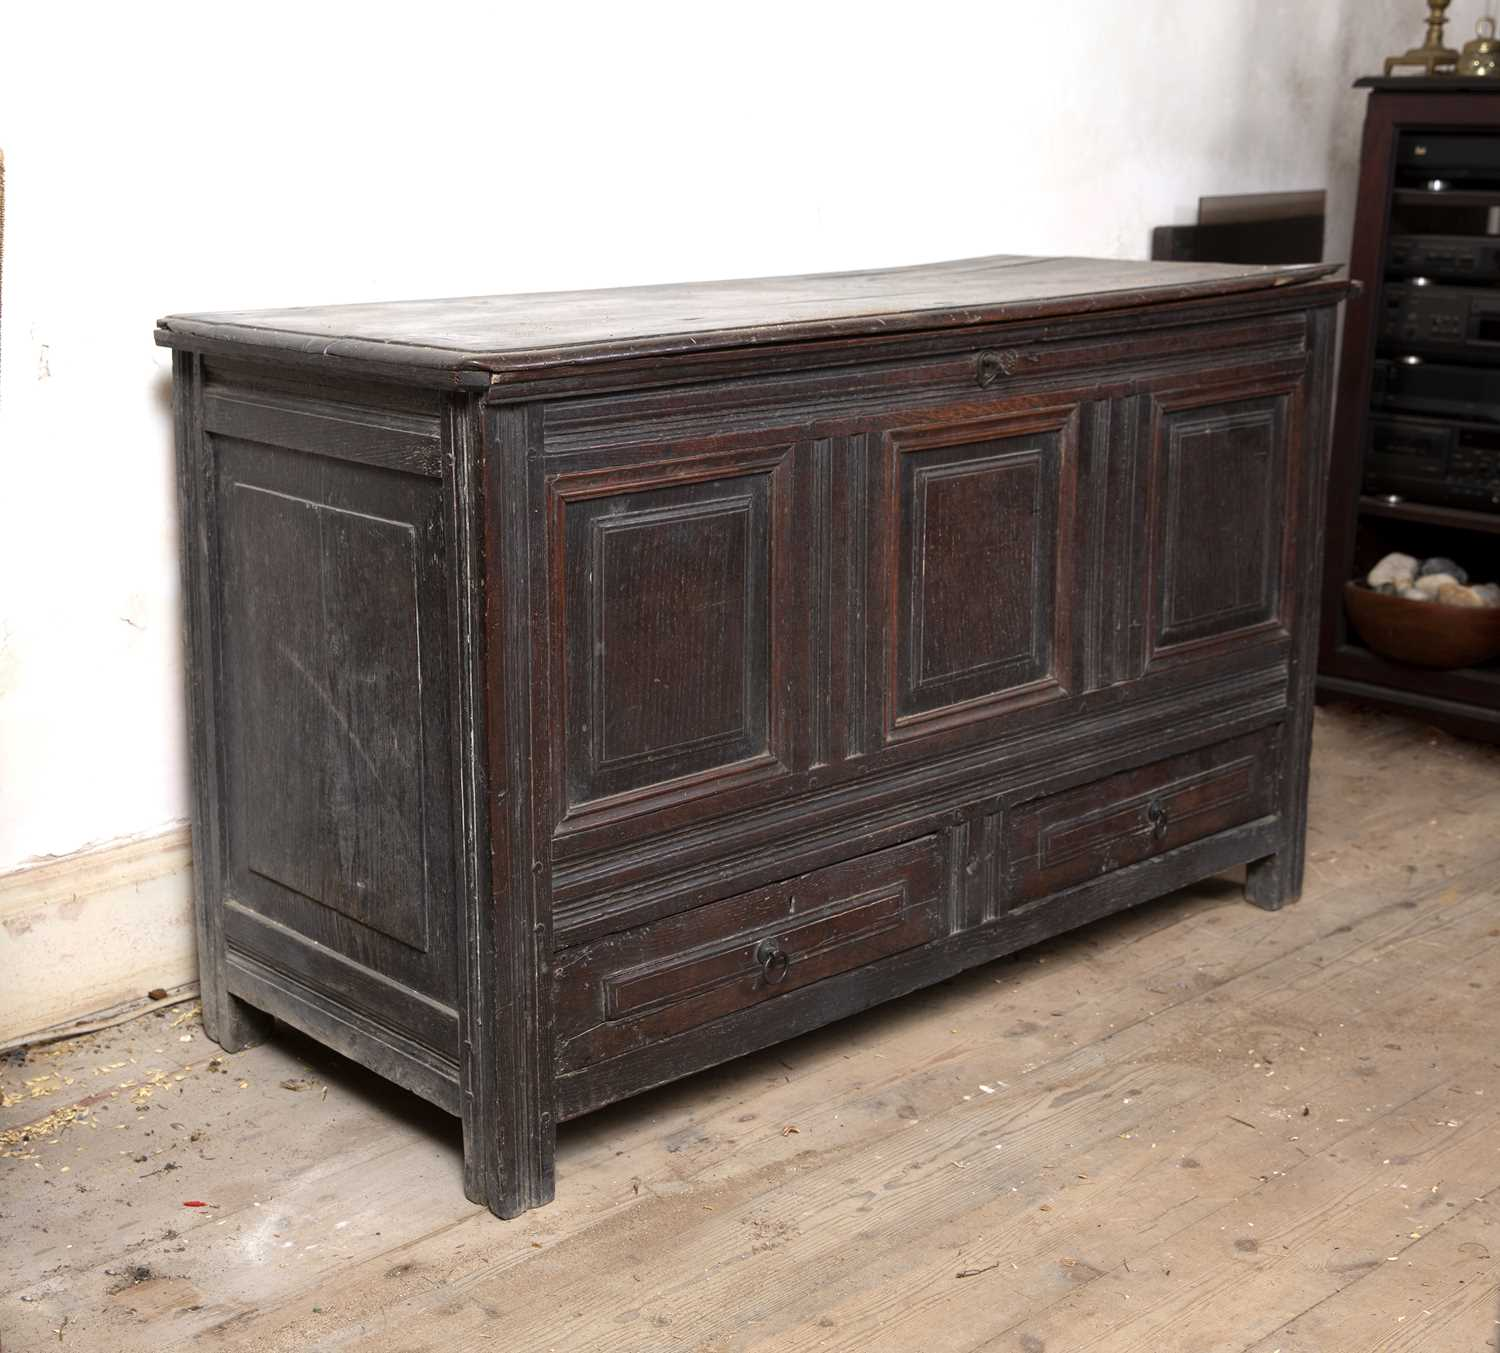 A late 17th Century oak coffer, with triple panelled front above two drawers, on block feet, 124cm